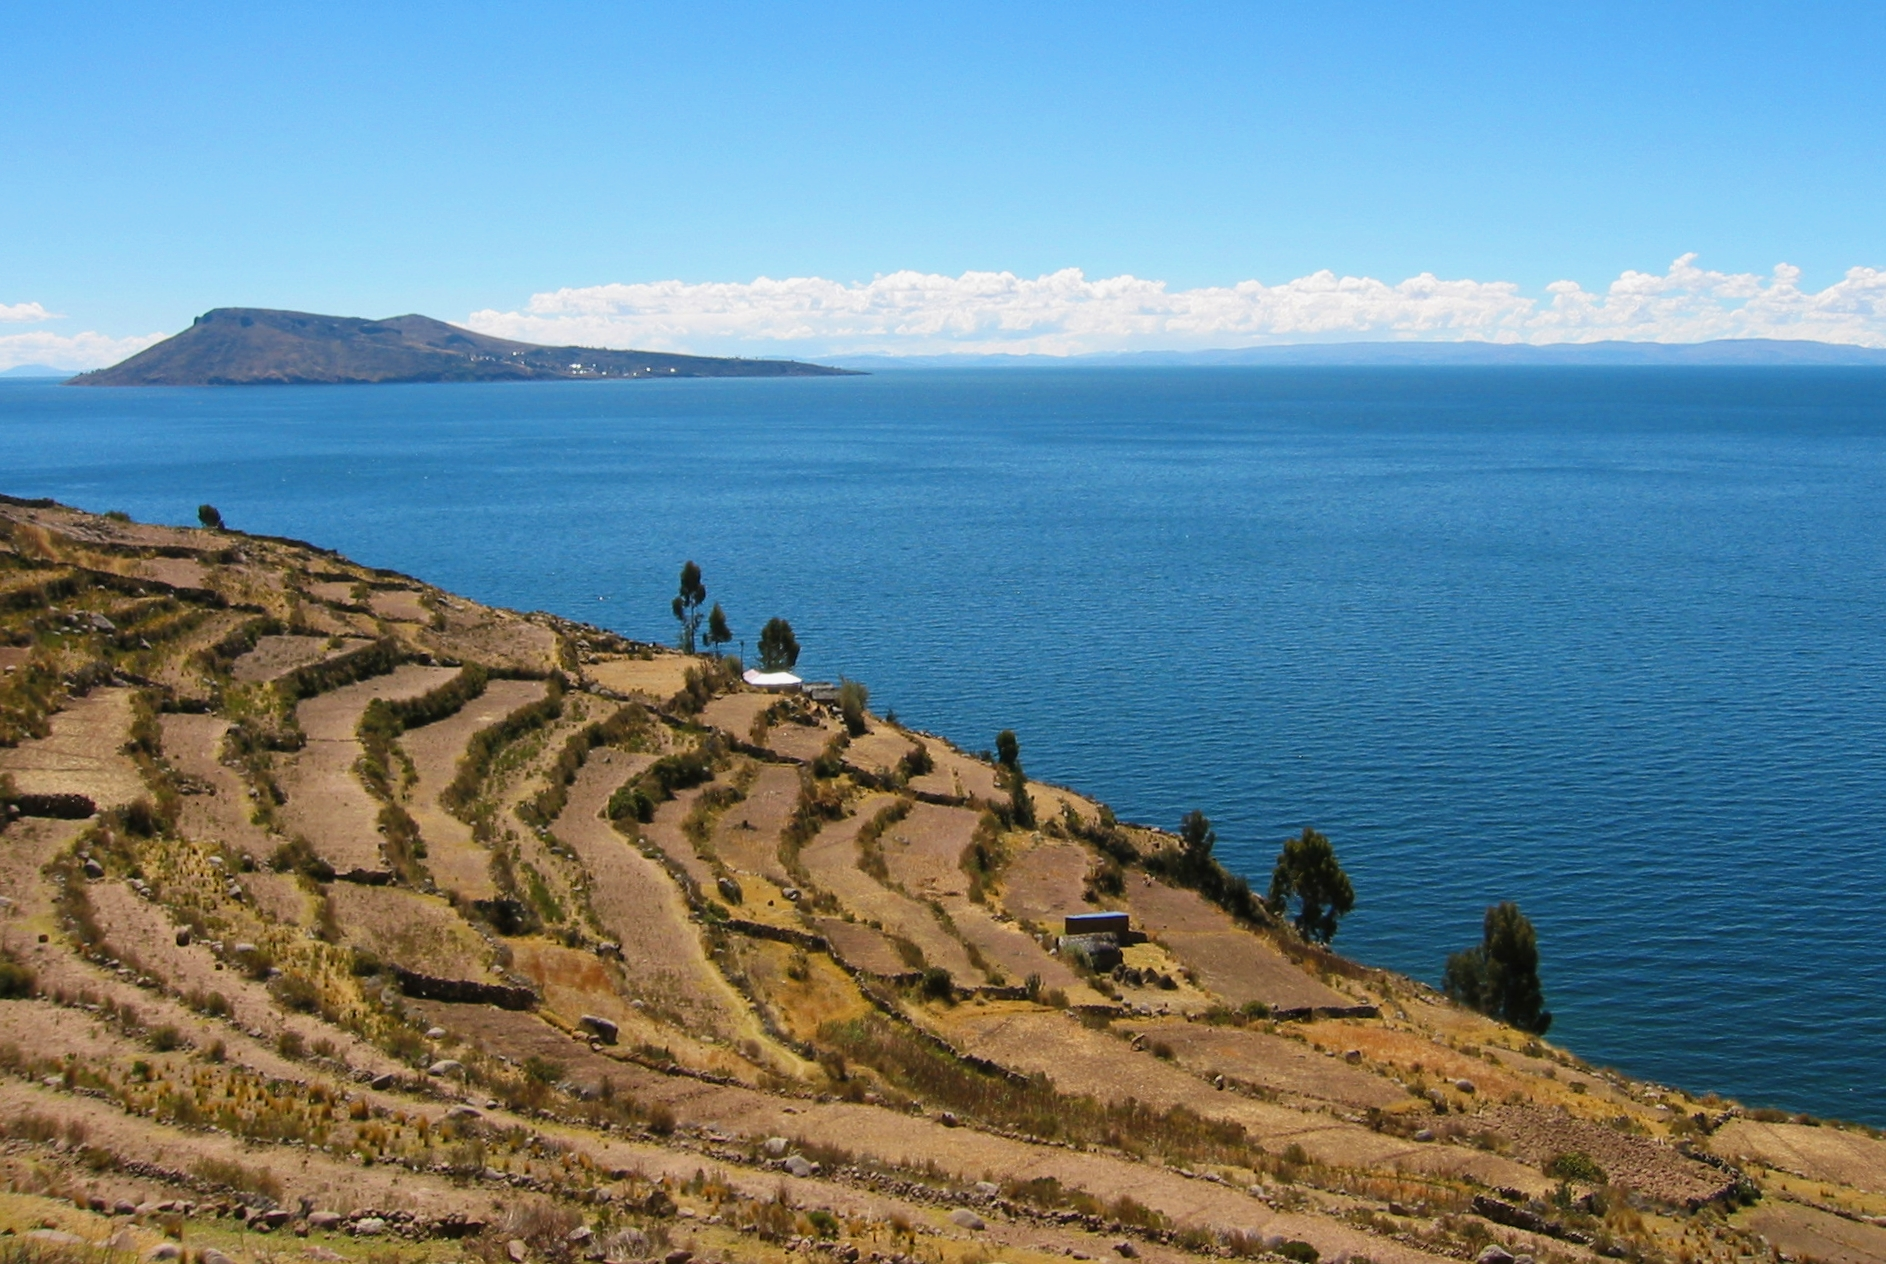 Lake Titicaca Has How Many Islands